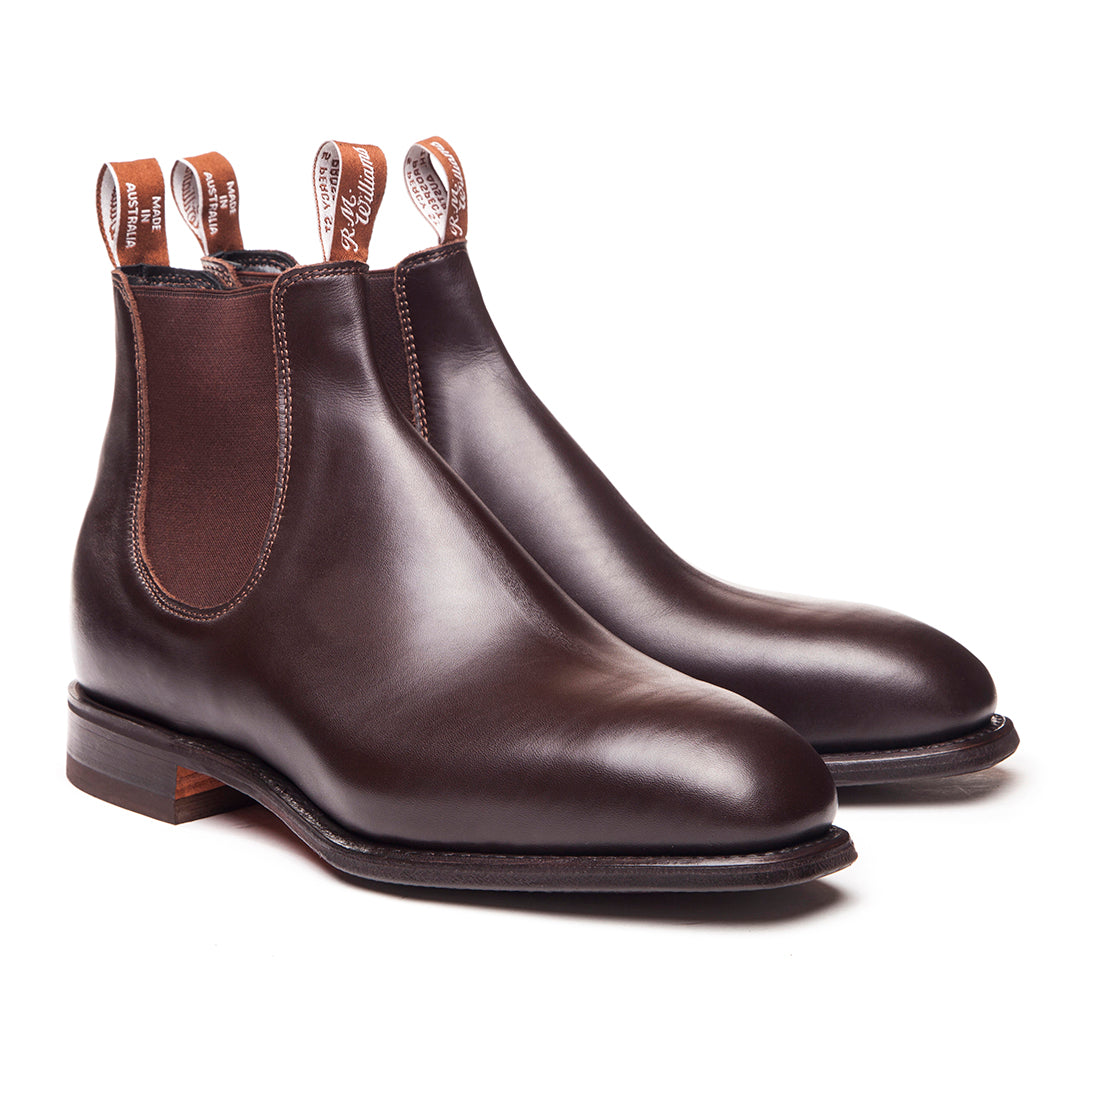 R.M. Williams Dynamic Flex - G Fit - Chestnut